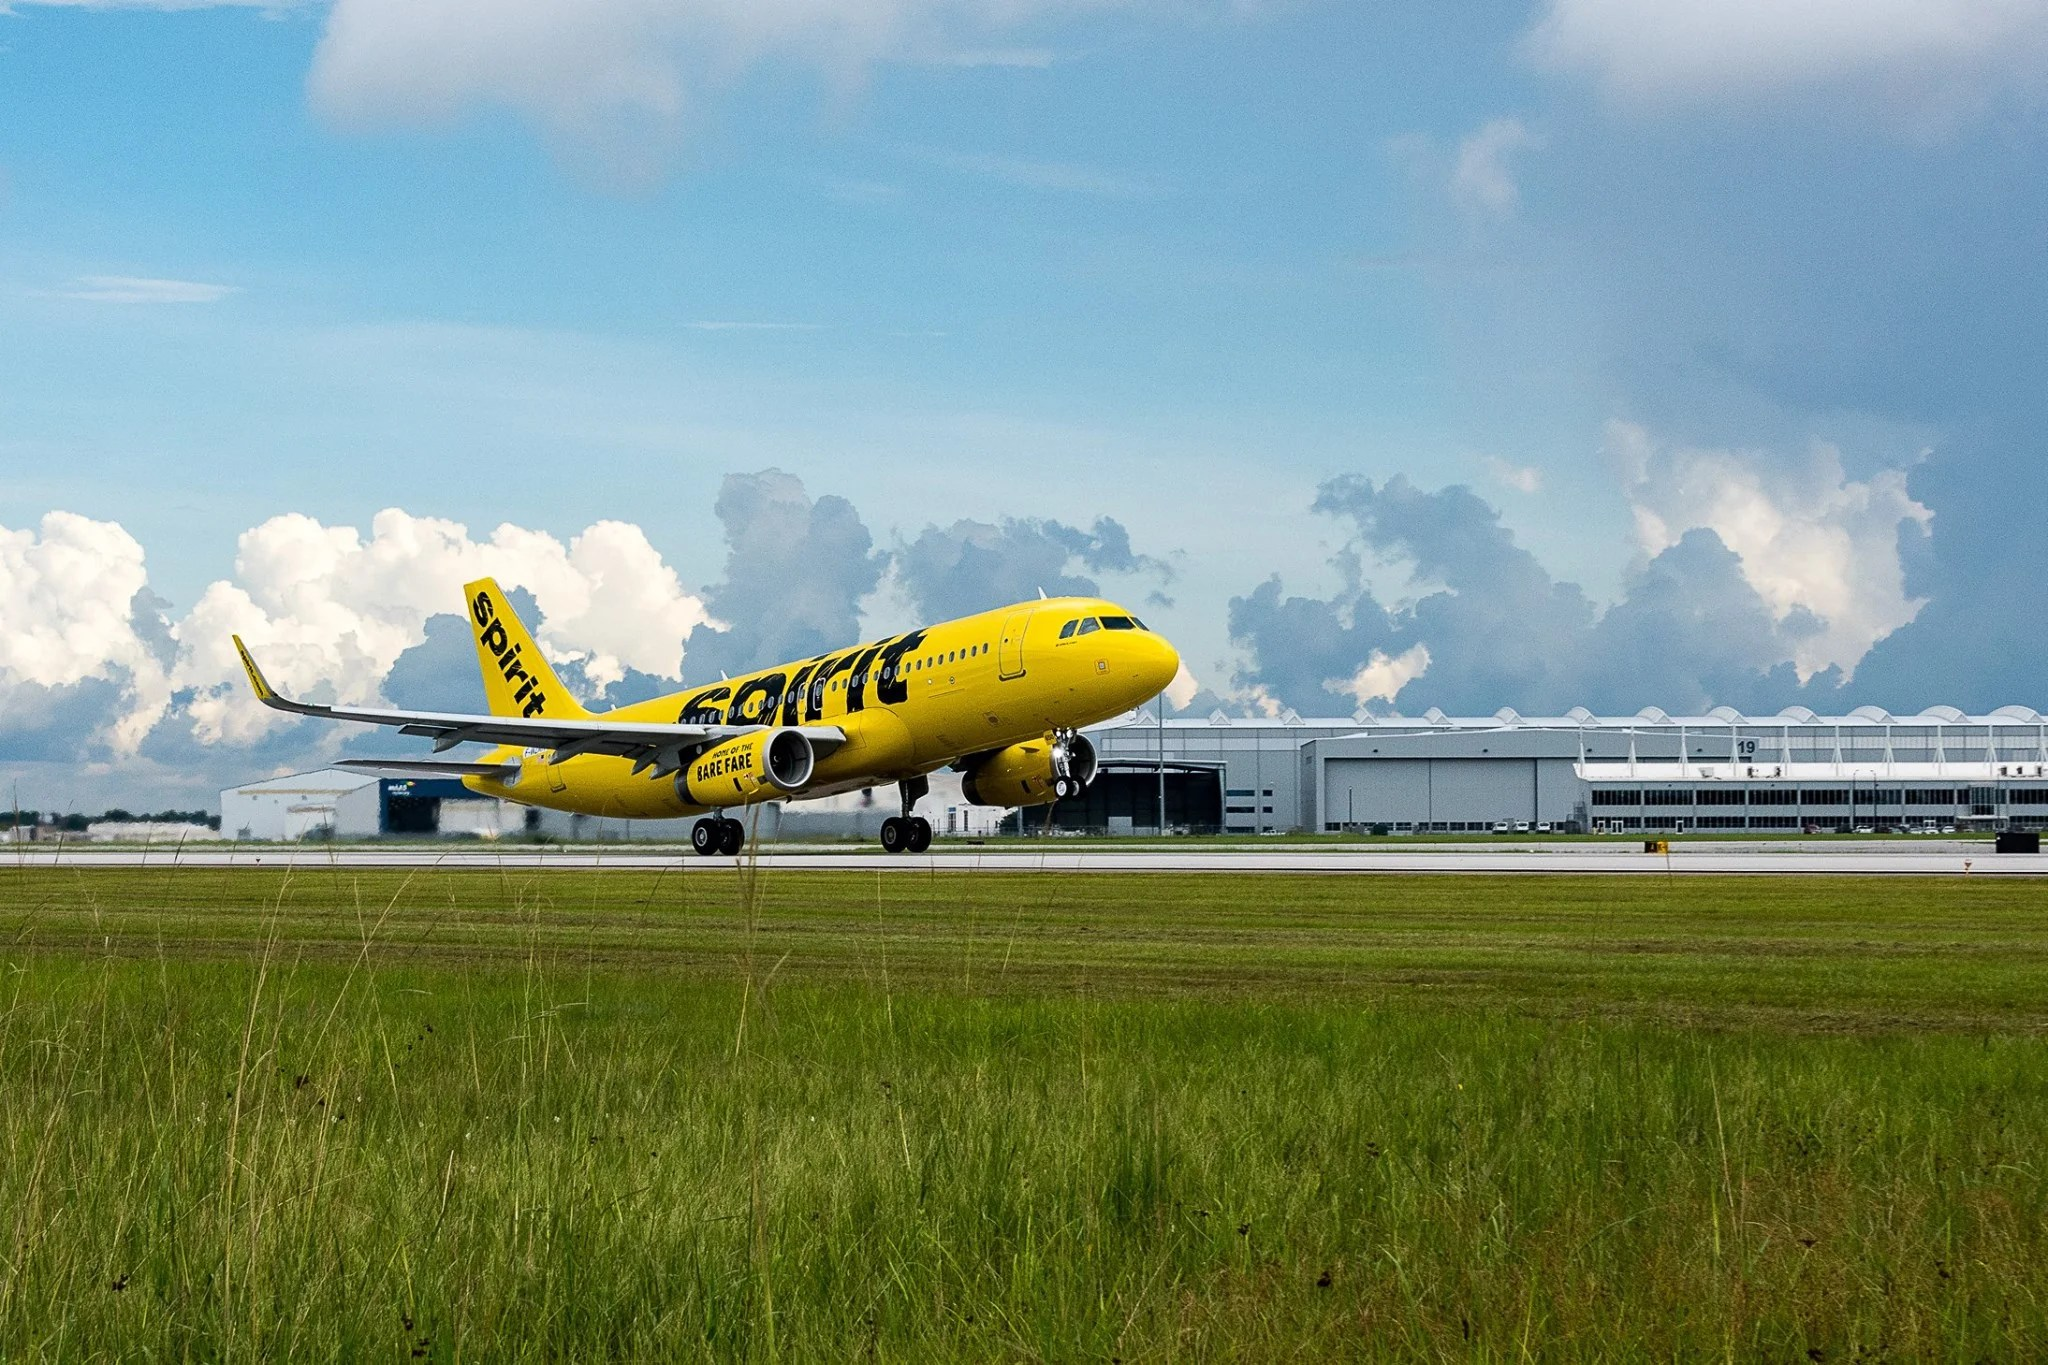 Spirit Airlines Mastercard Doubles Bonus: Enough Miles for Up to 12 One-Way Flights